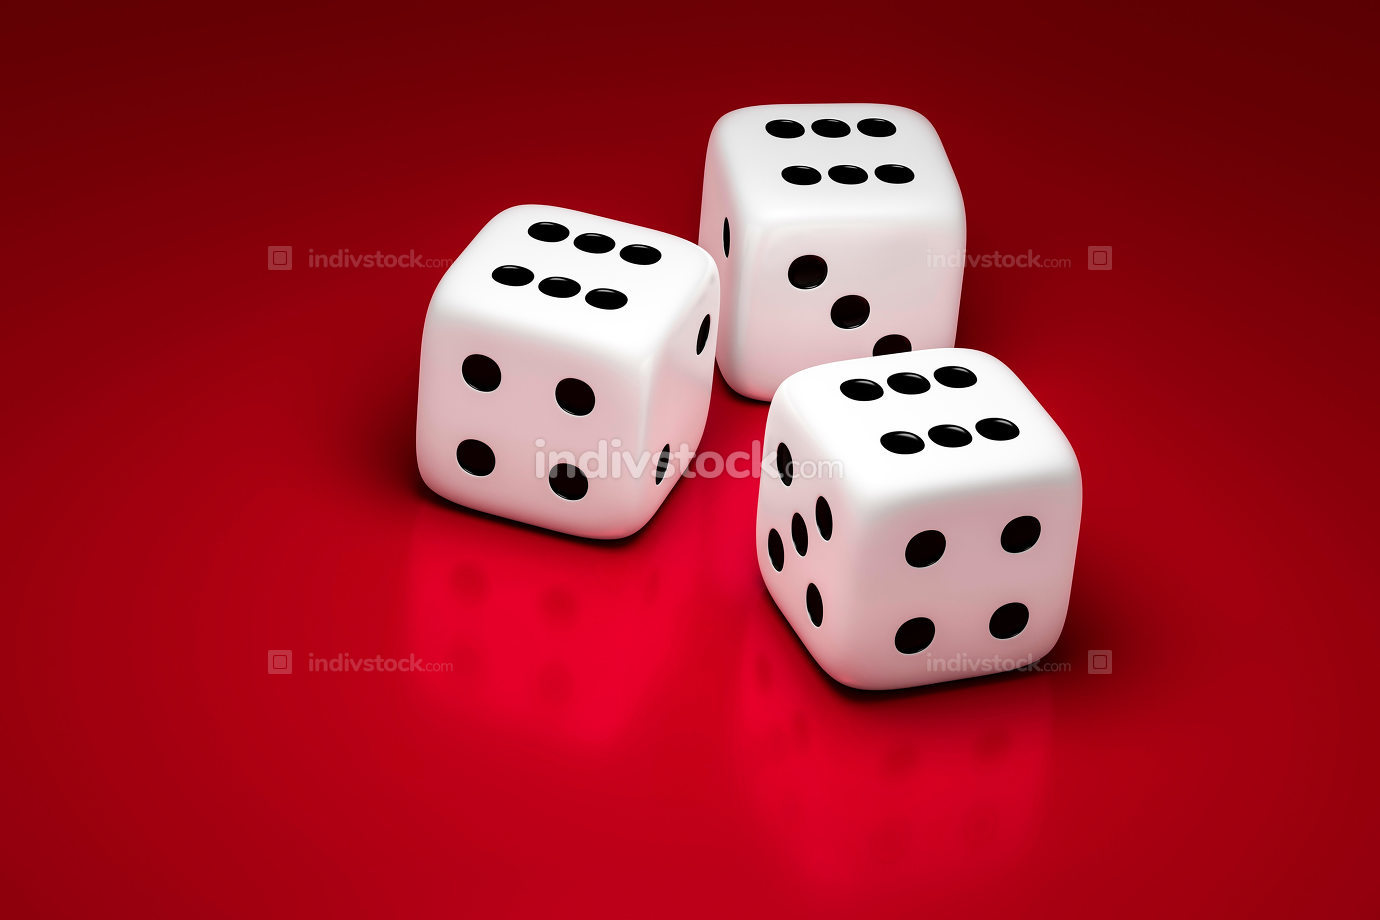 three white dice on a red background 3D illustration